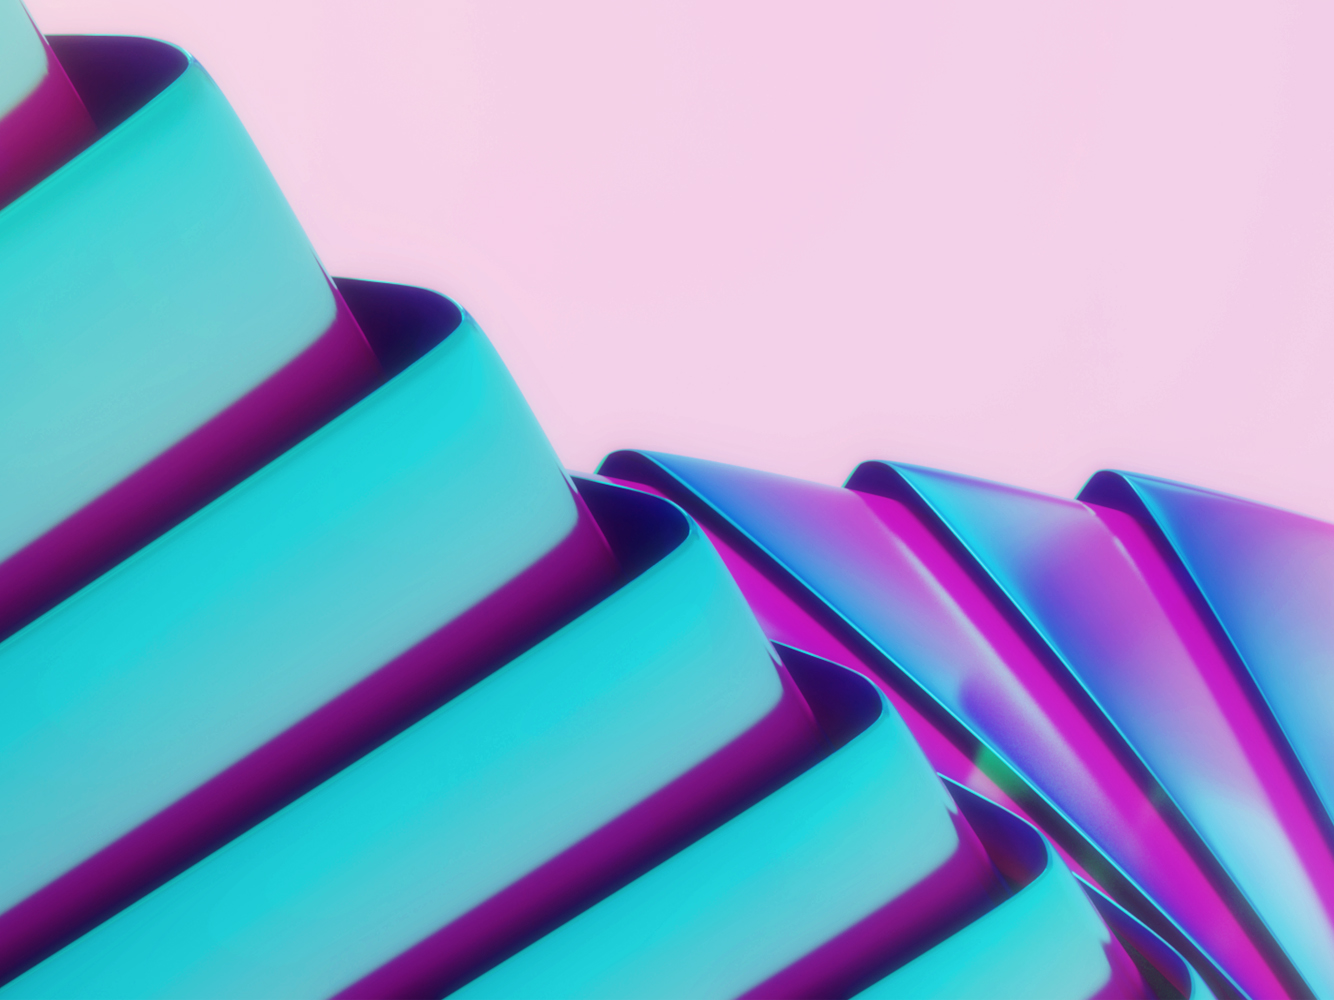 Iridescent Wallpapers vray 3dsmax dribbble wallpapers abstract geometries shapes iridescent illustration geometry shape render art design digitalart graphicdesign 3d piacentino